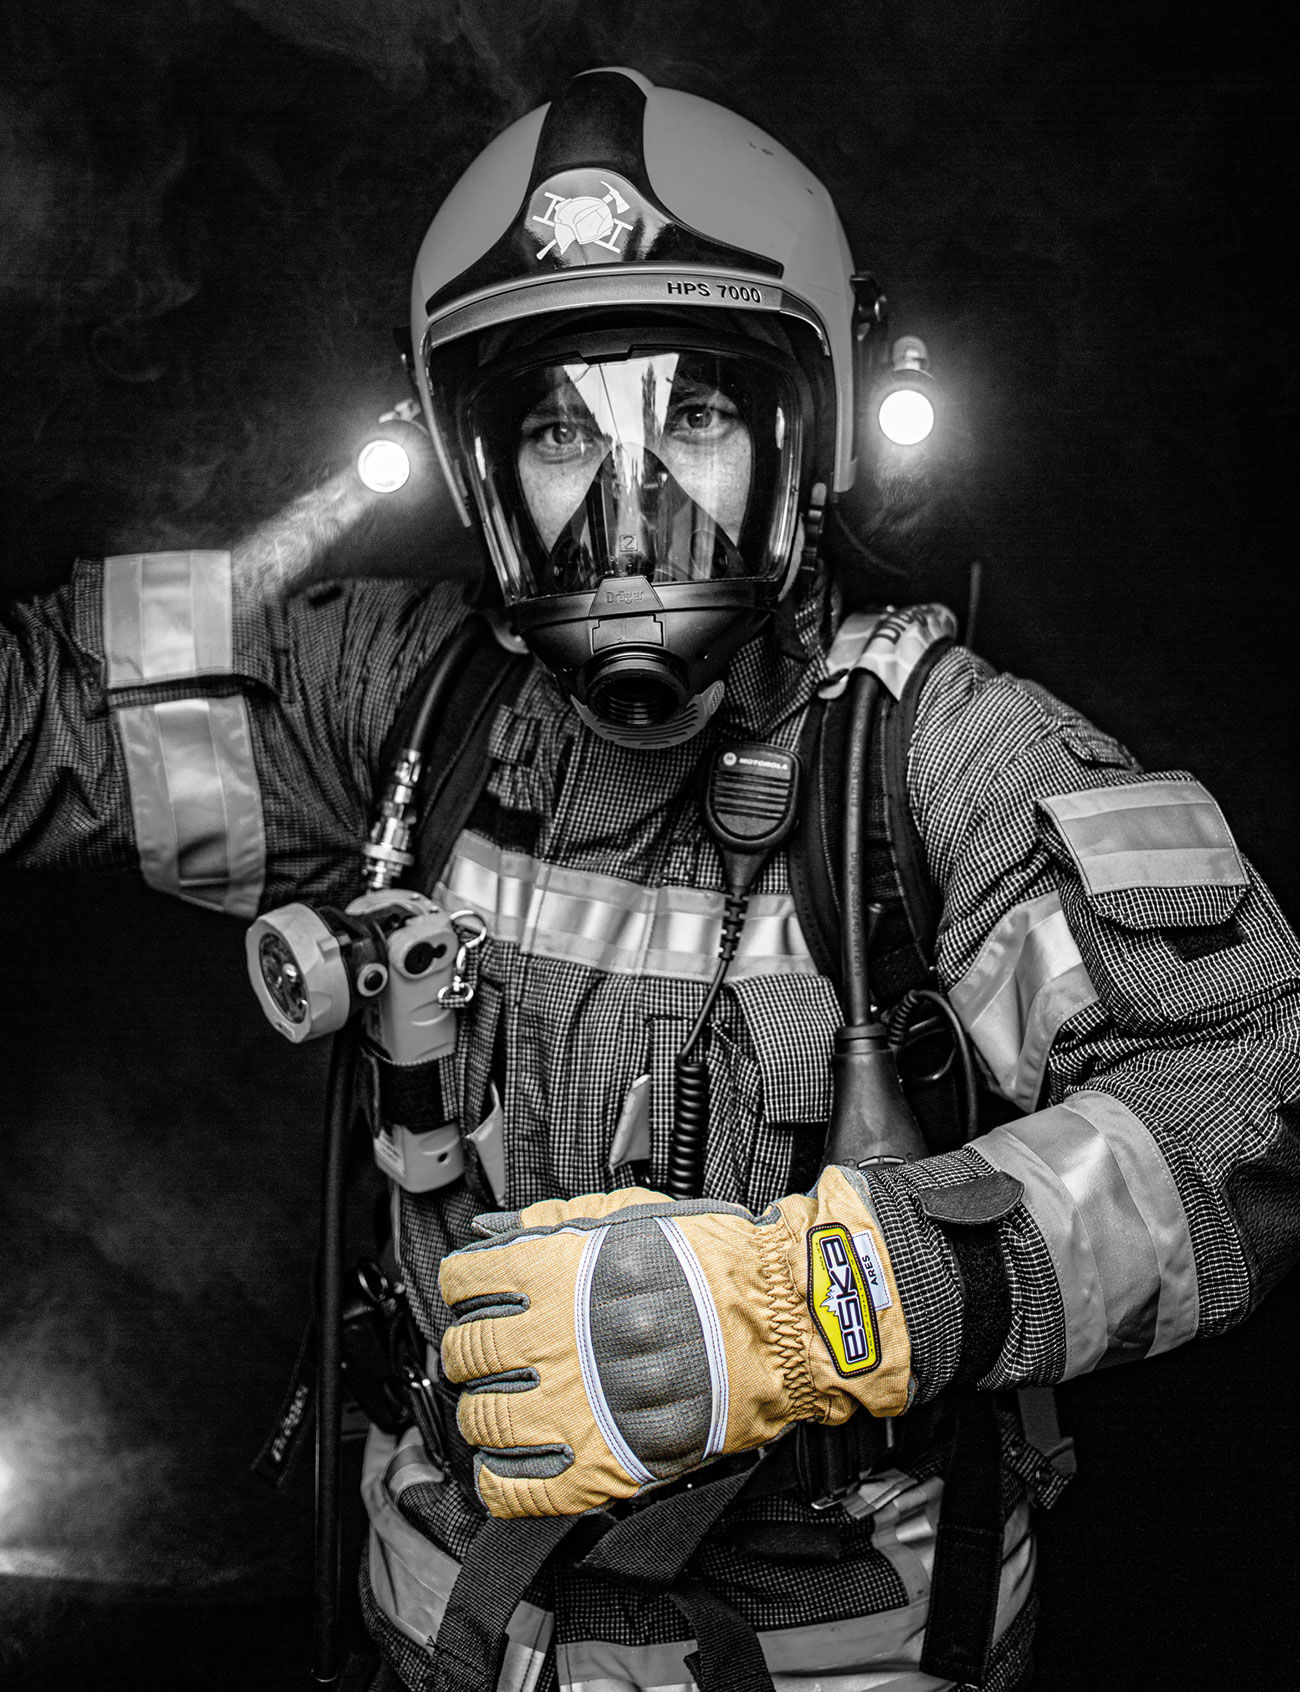 The textile firefighting glove ARES is certified to AZ/NZS 2161.6-2014 and fulfils the extremely strict Australian standards.